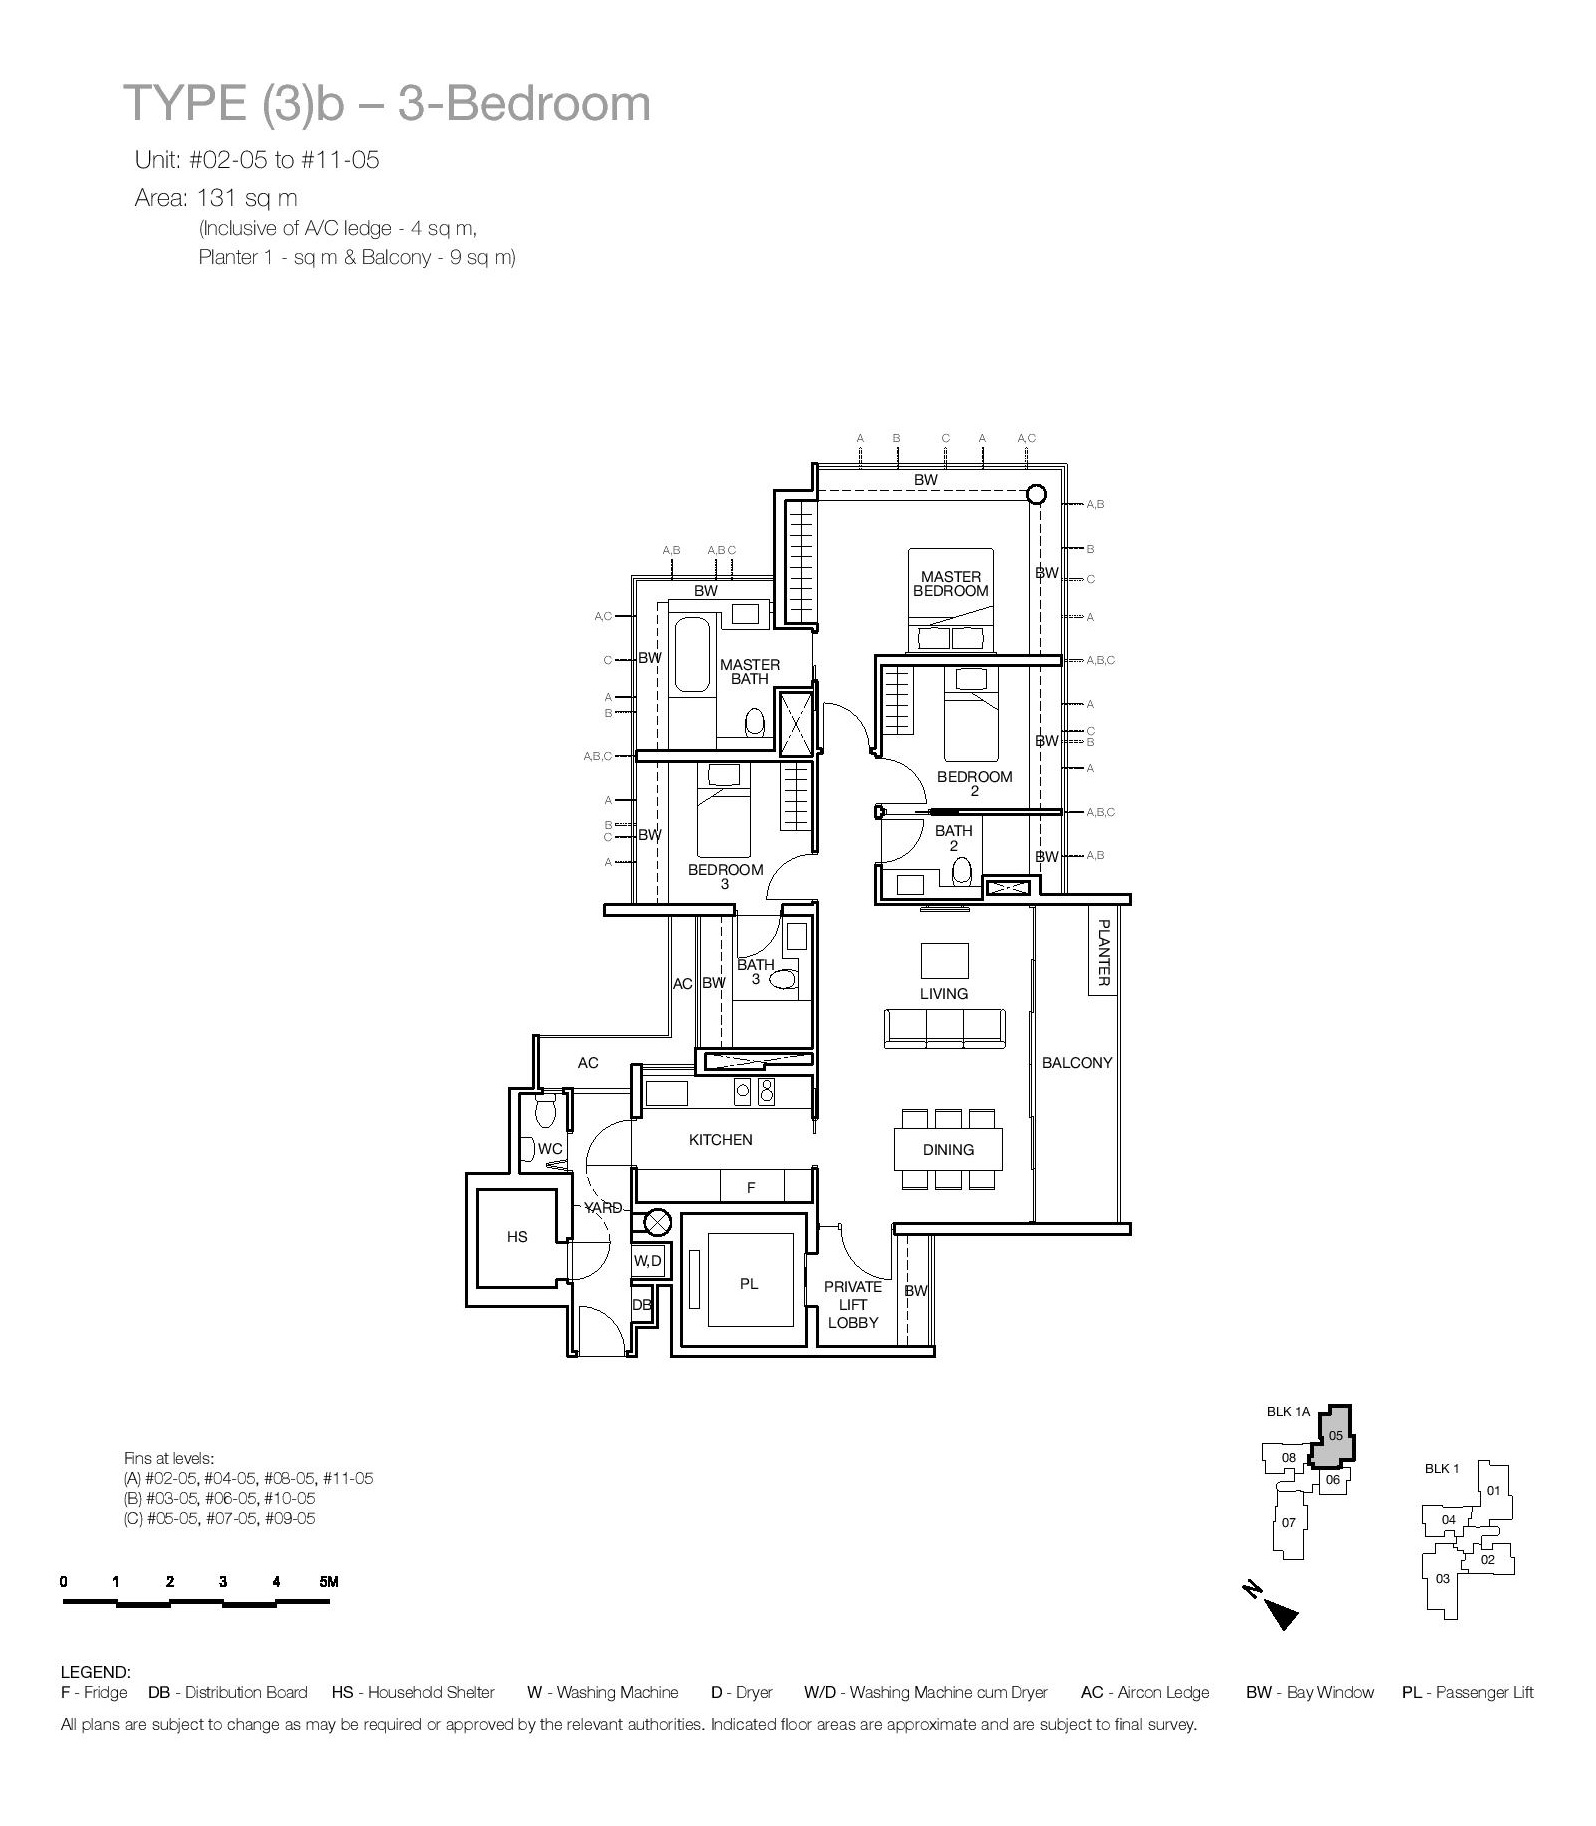 One Balmoral 3 Bedroom Floor Type (3)b Plans